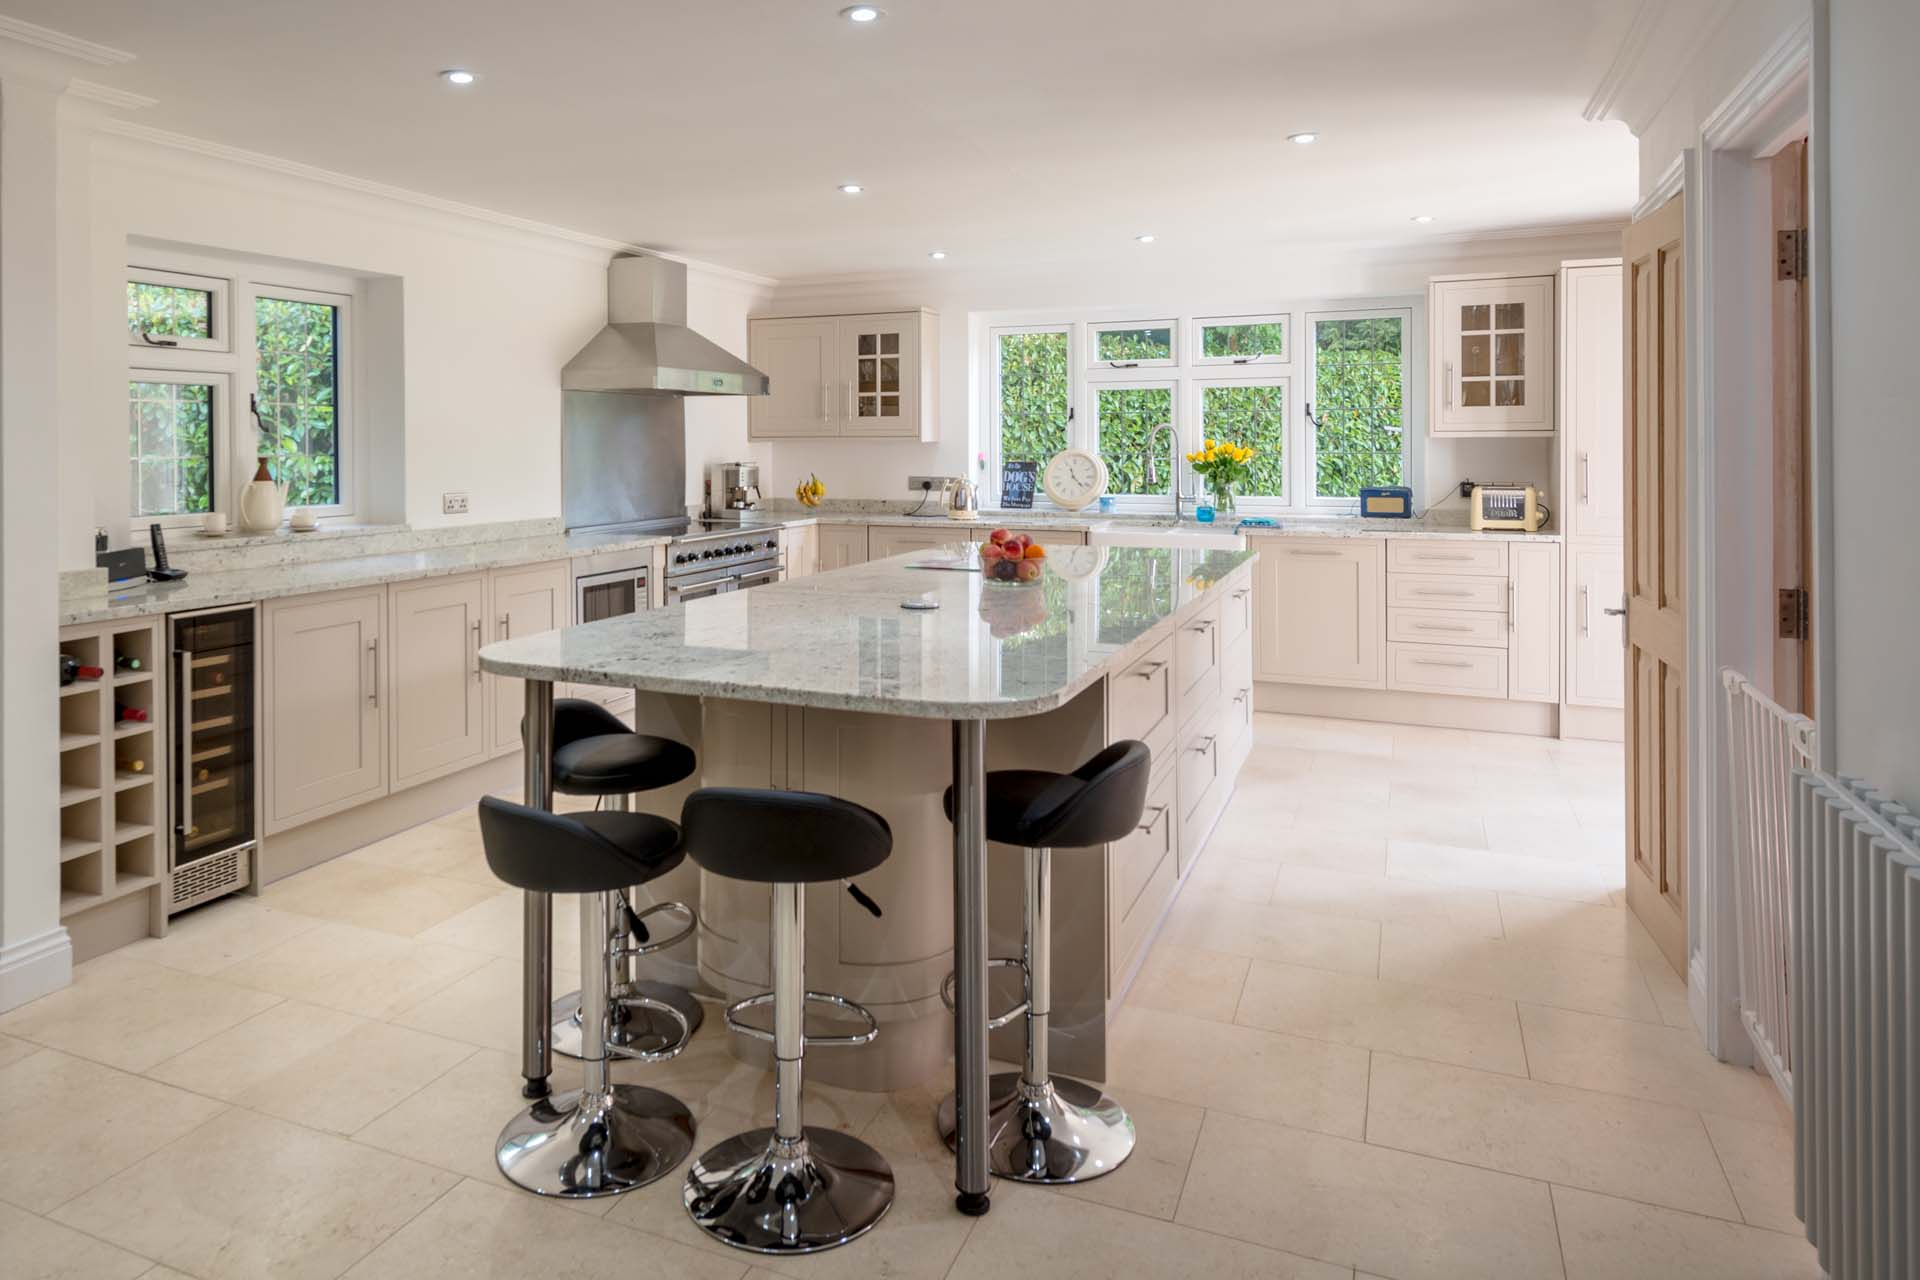 Colonial-White-Granite-Tadworth-Surrey-170710-112307-2a.jpg